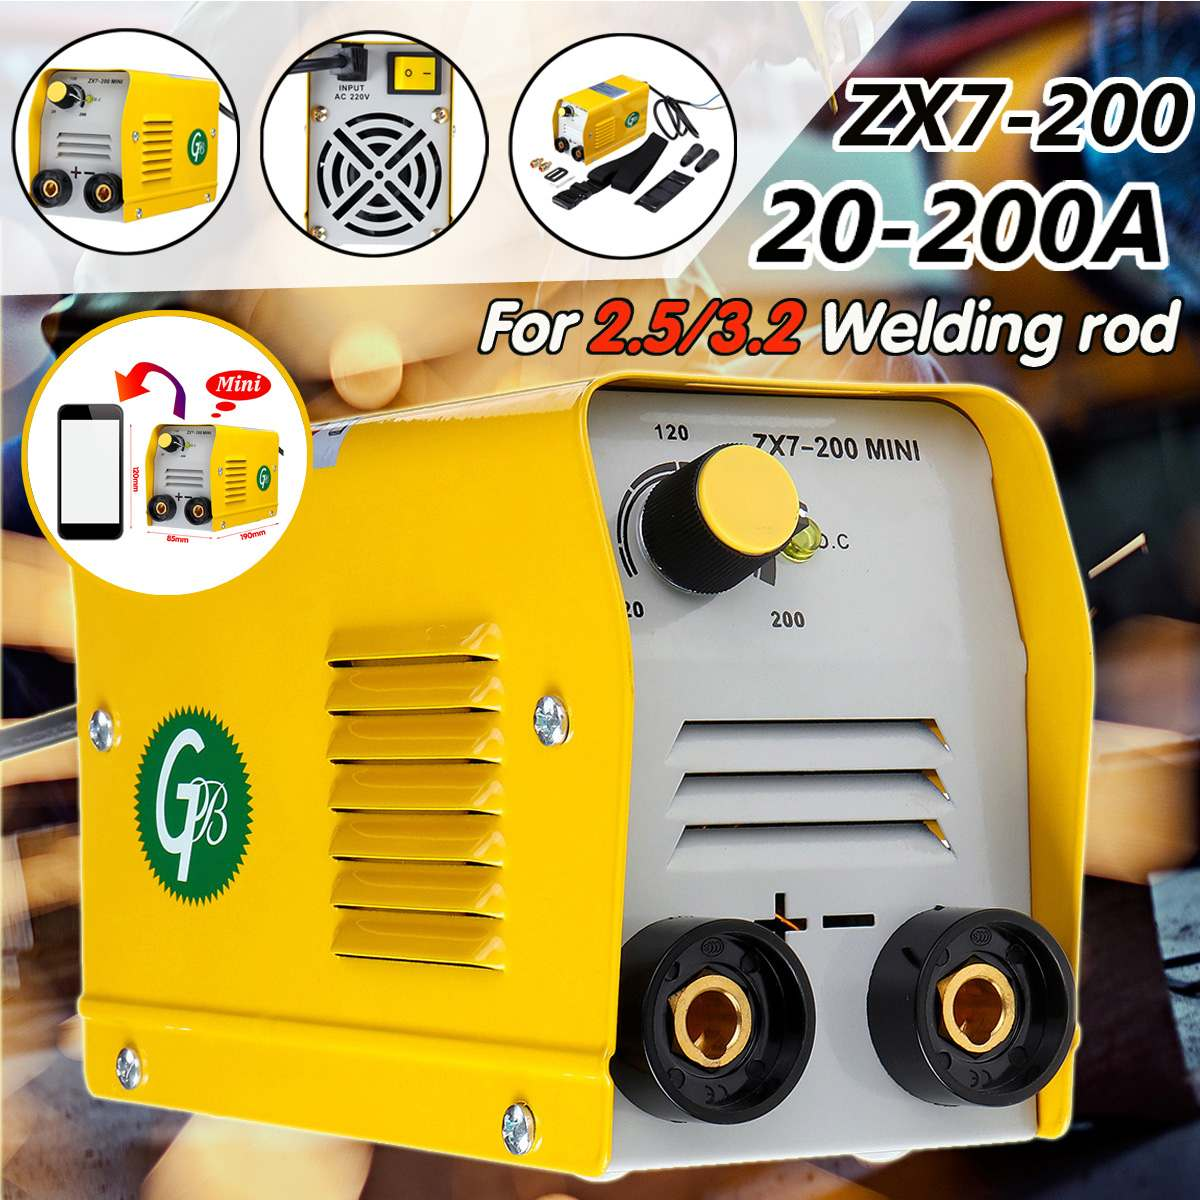 ZX7-200 220V Handheld Mini MMA Electric Stick Welder Insulated Electrode Inverter Arc Force Metal Welding Machine Portable Tool